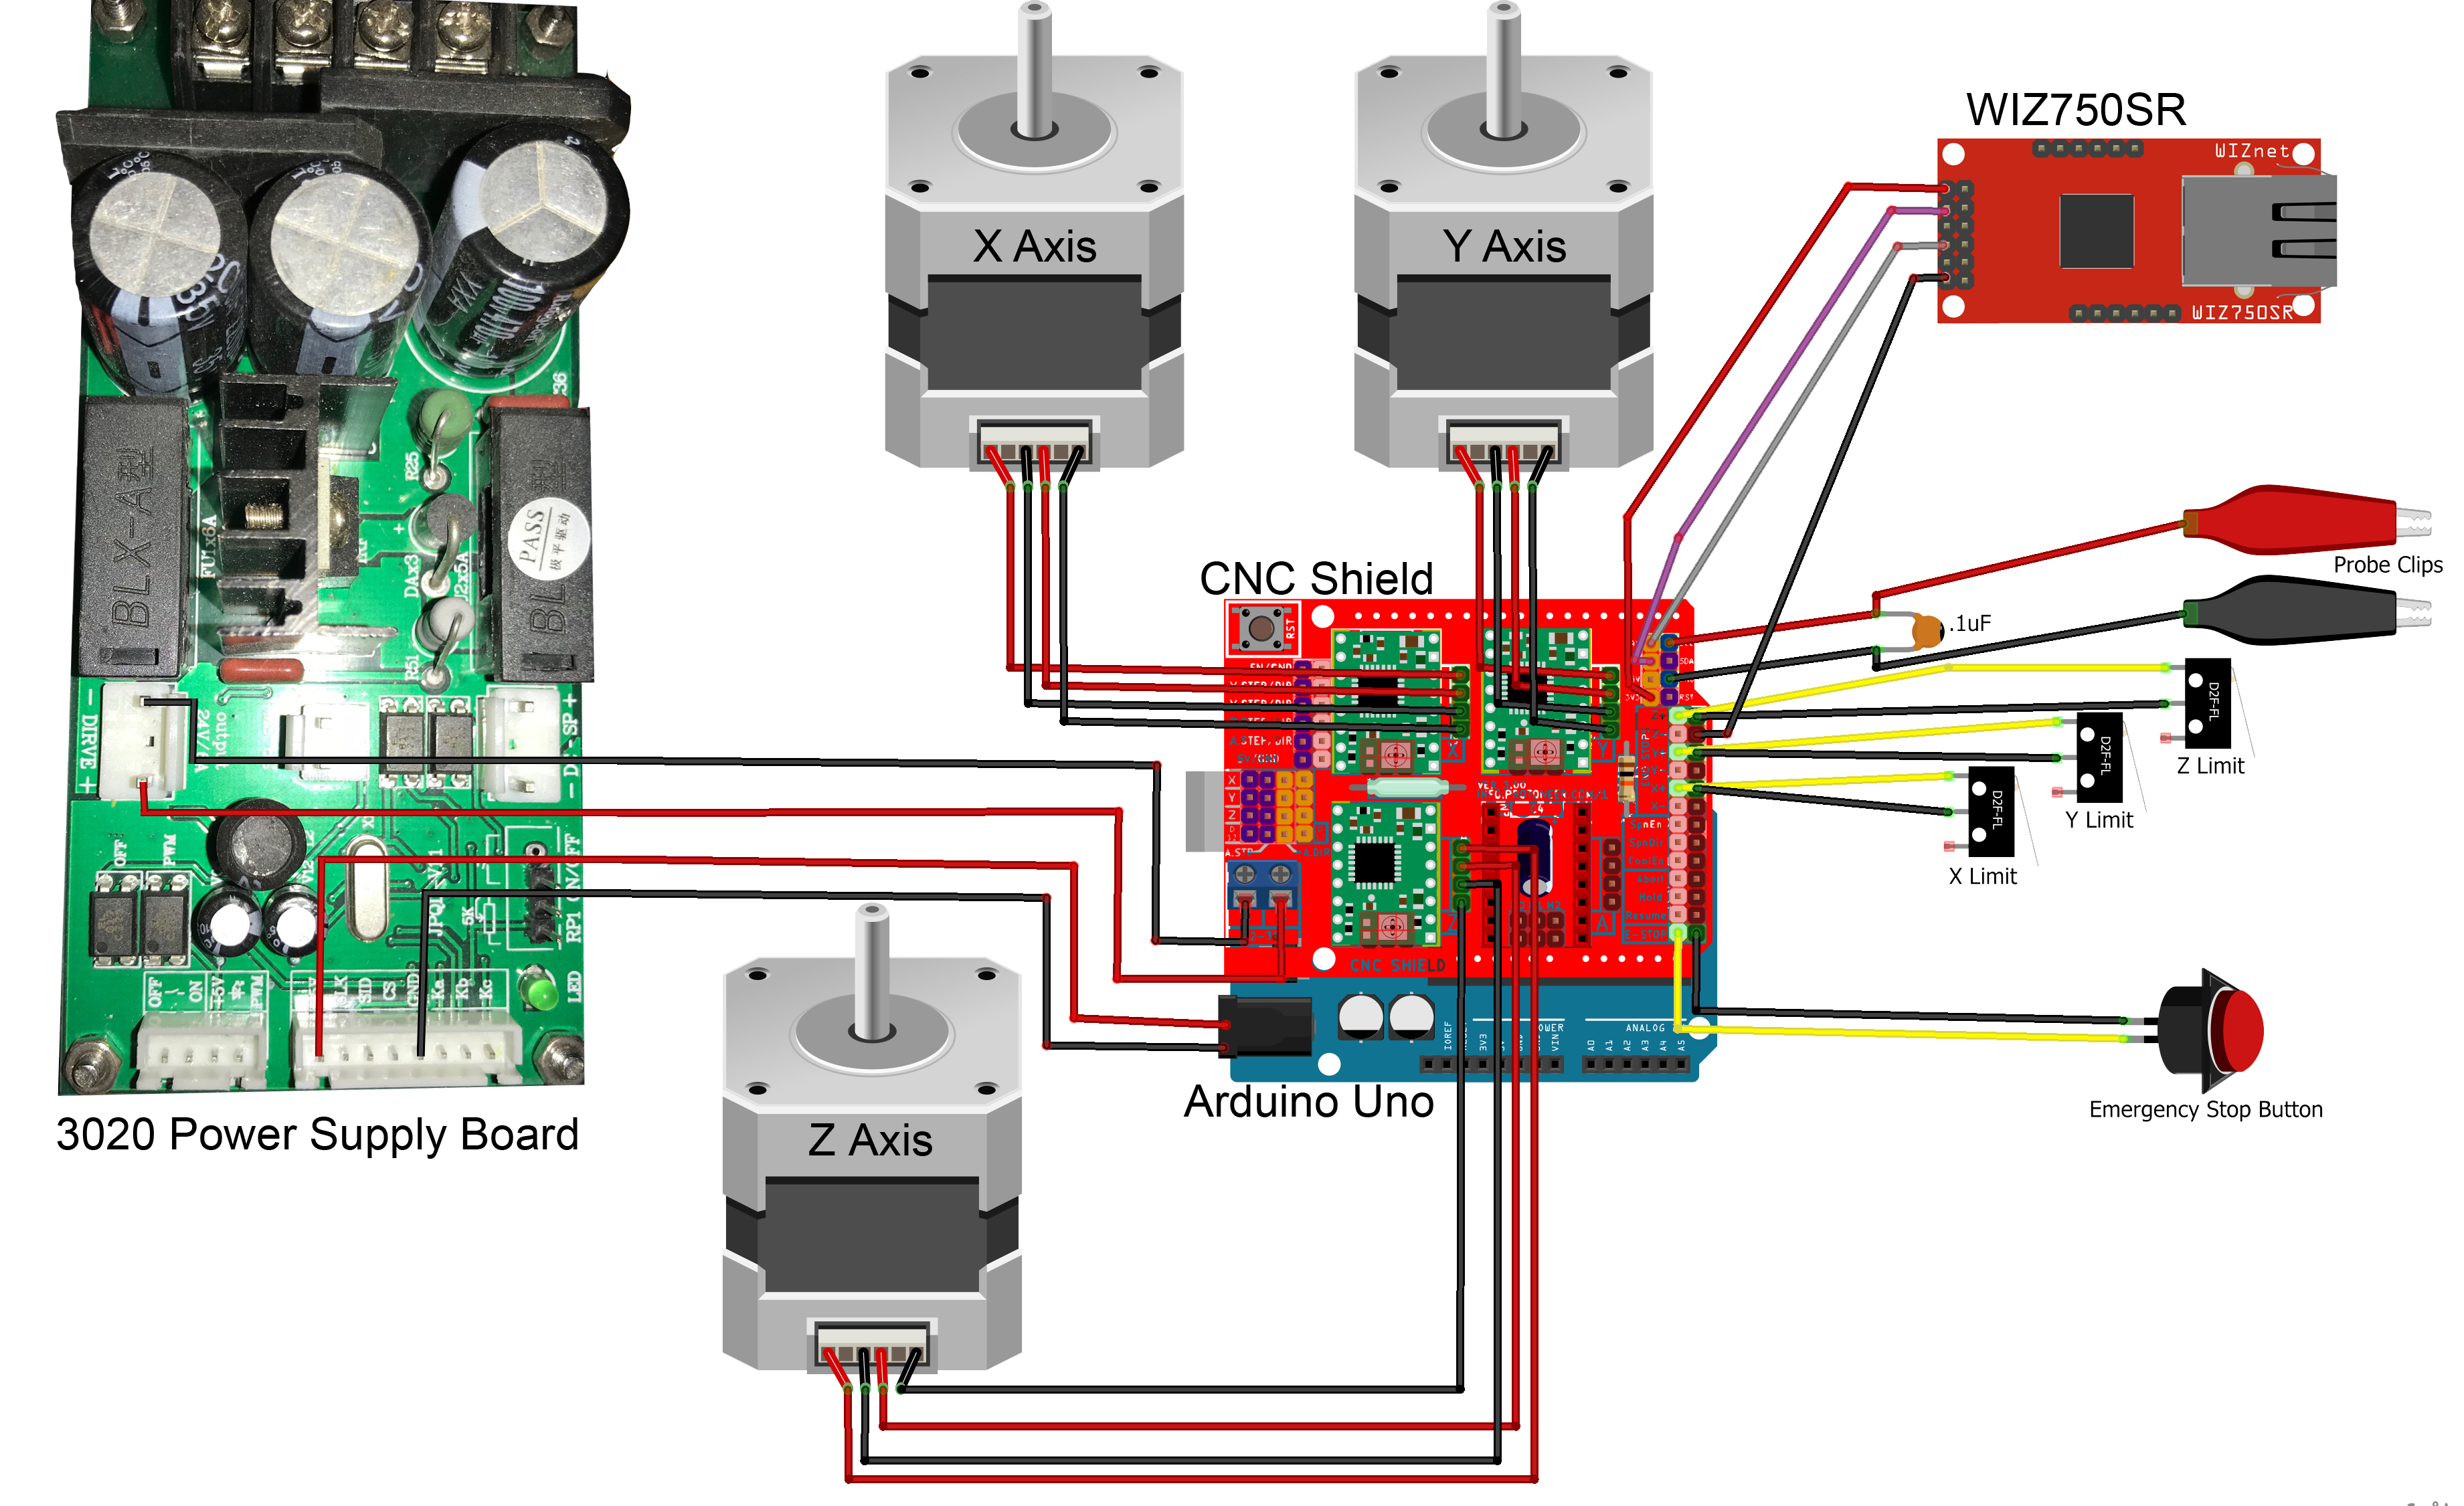 Changzhou Usb Cnc Wiring Diagram | Manual E-Books - 4 Axis Usb Cnc Controller Wiring Diagram